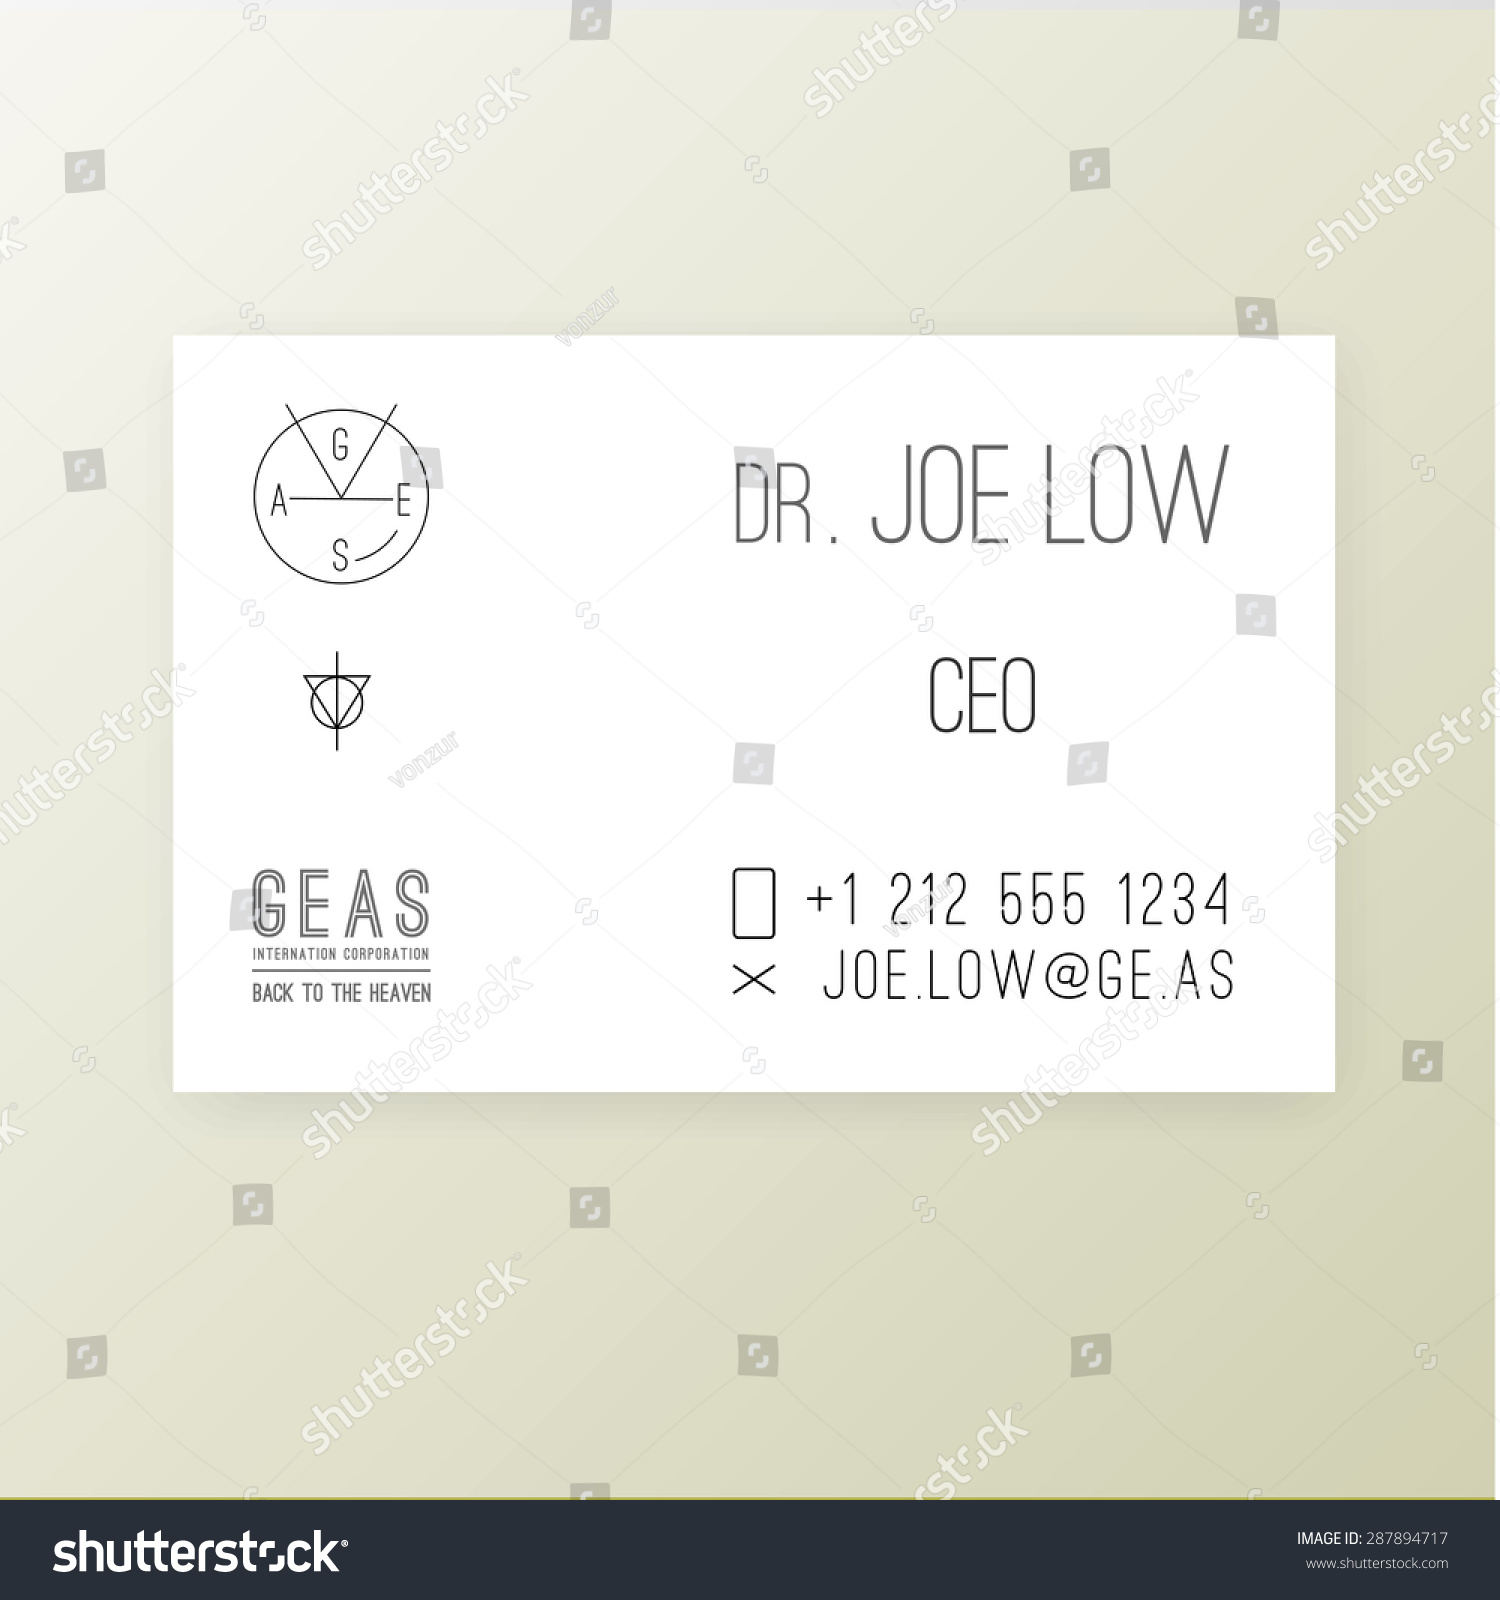 Ibm business card template gallery free business cards ge business card gallery free business cards modern simple light business card template stock vector 287894717 magicingreecefo Gallery